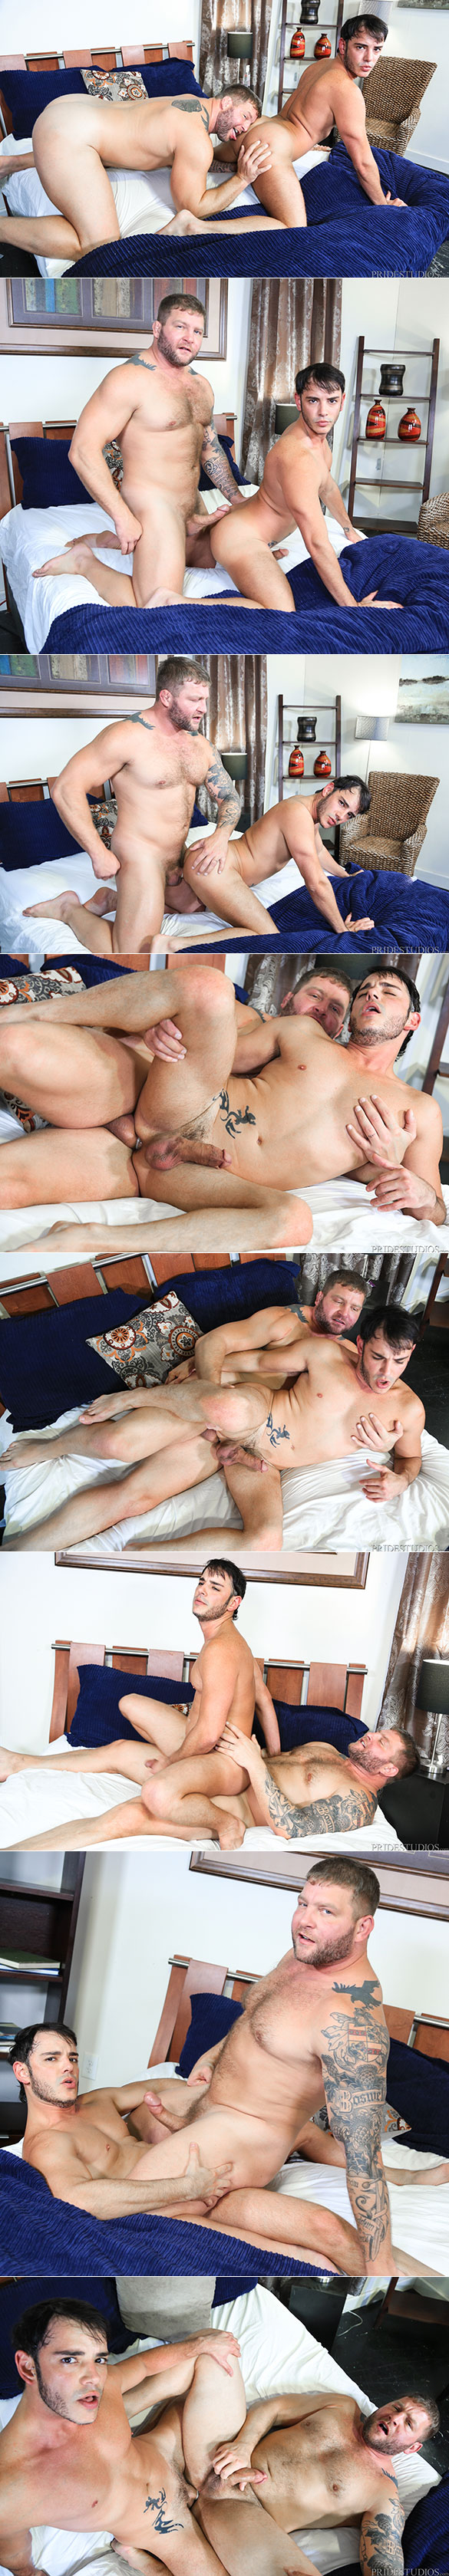 "Pride Studios: Colby Jansen and Rego Bello flip fuck in ""Let's Be Versatile Baby"""